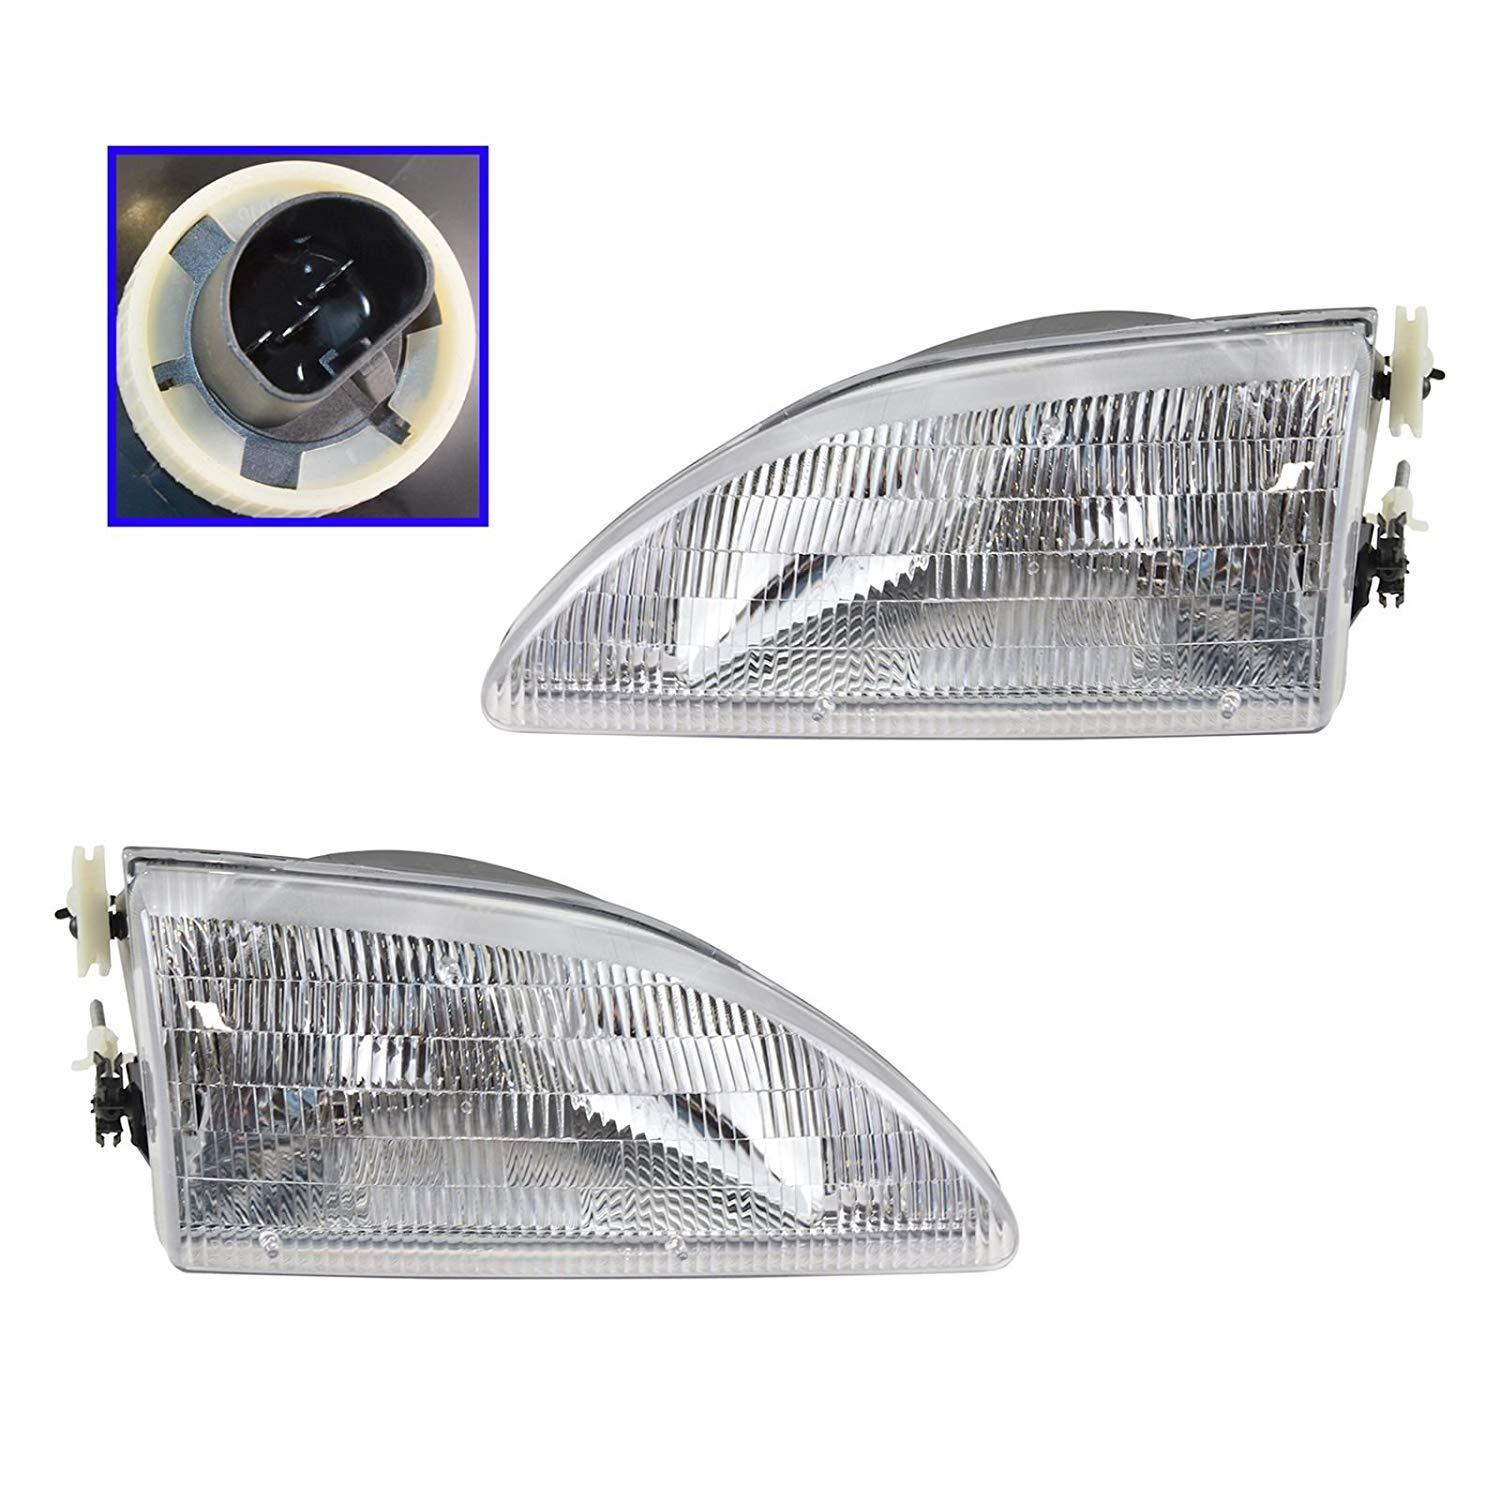 Headlights Headlamps Left & Right Pair Set for 94-98 <em>Ford</em> <em>Mustang</em>